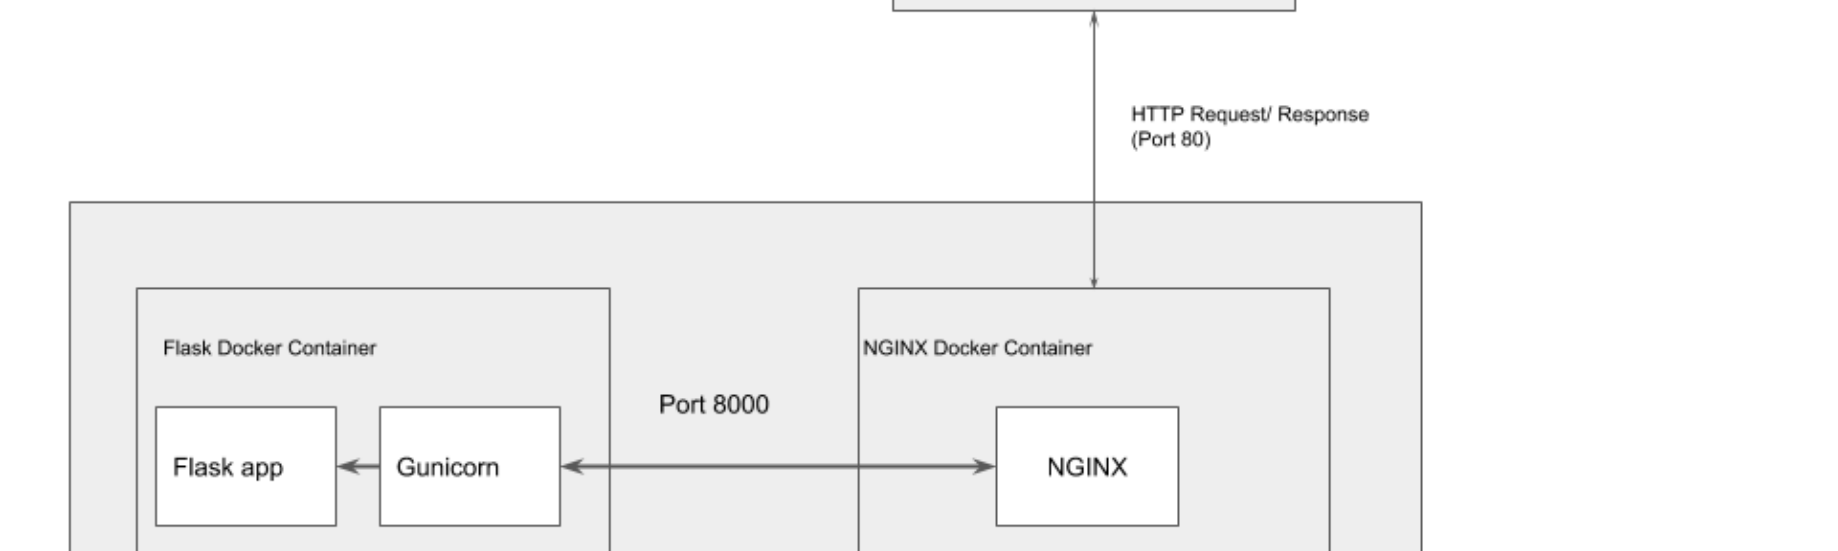 Deep Learning Rest API in Production using Docker, NGINX and